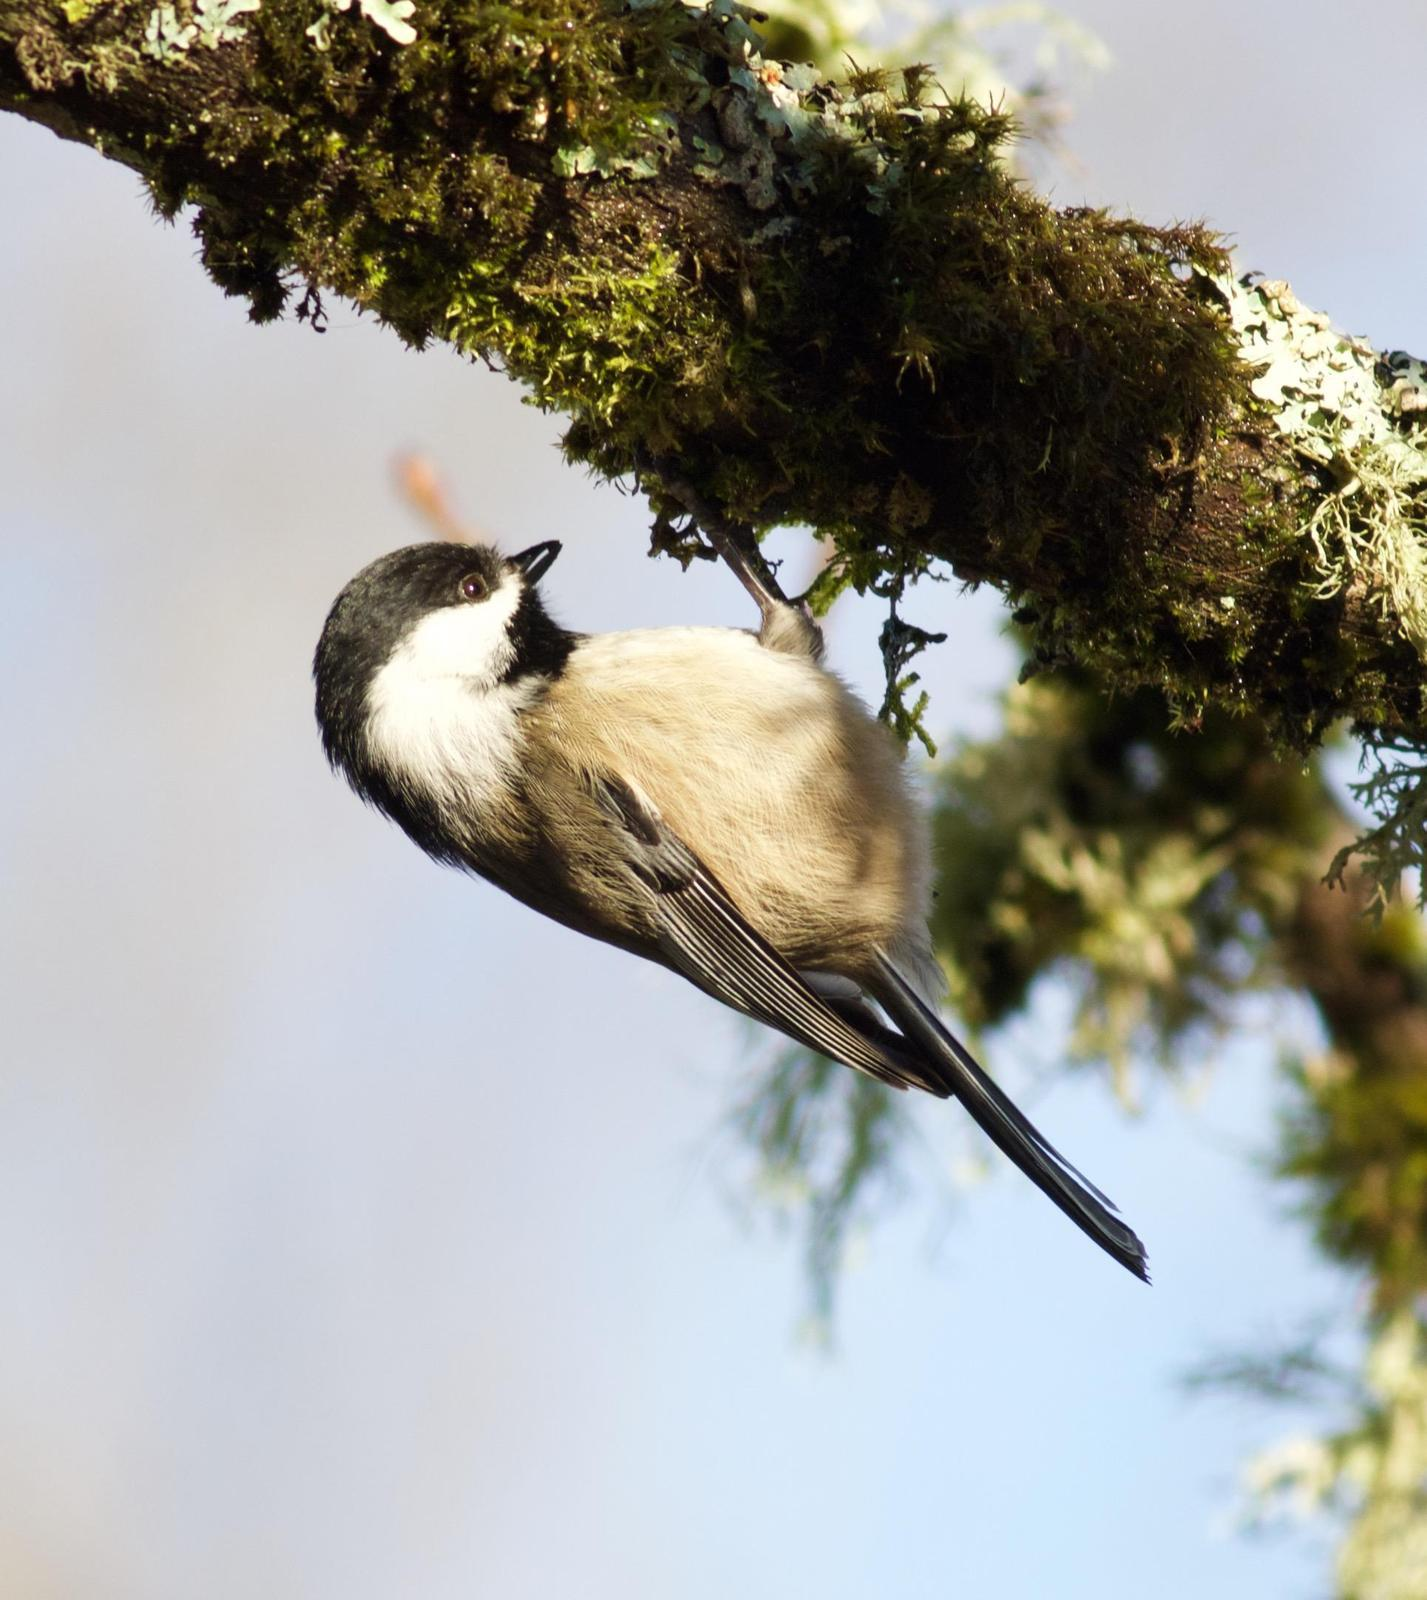 Black-capped Chickadee Photo by Kathryn Keith